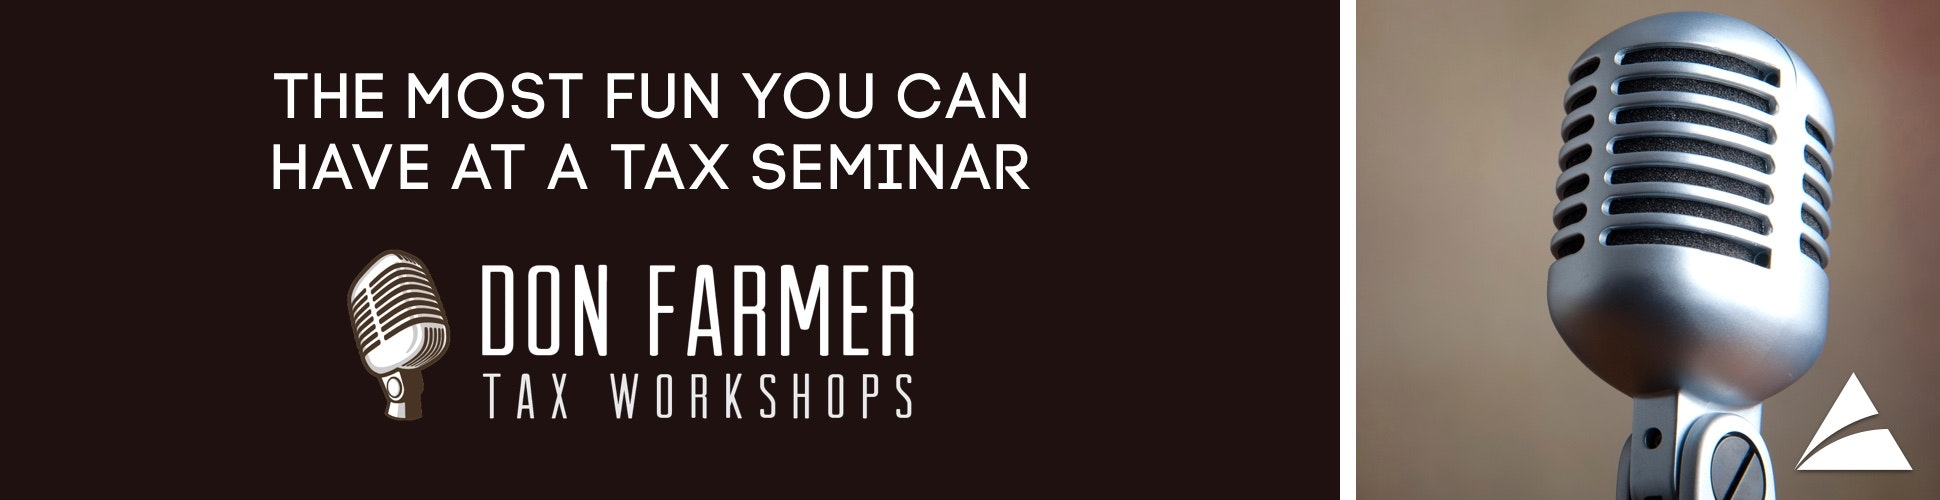 2017 Don Farrmer Tax Workshops